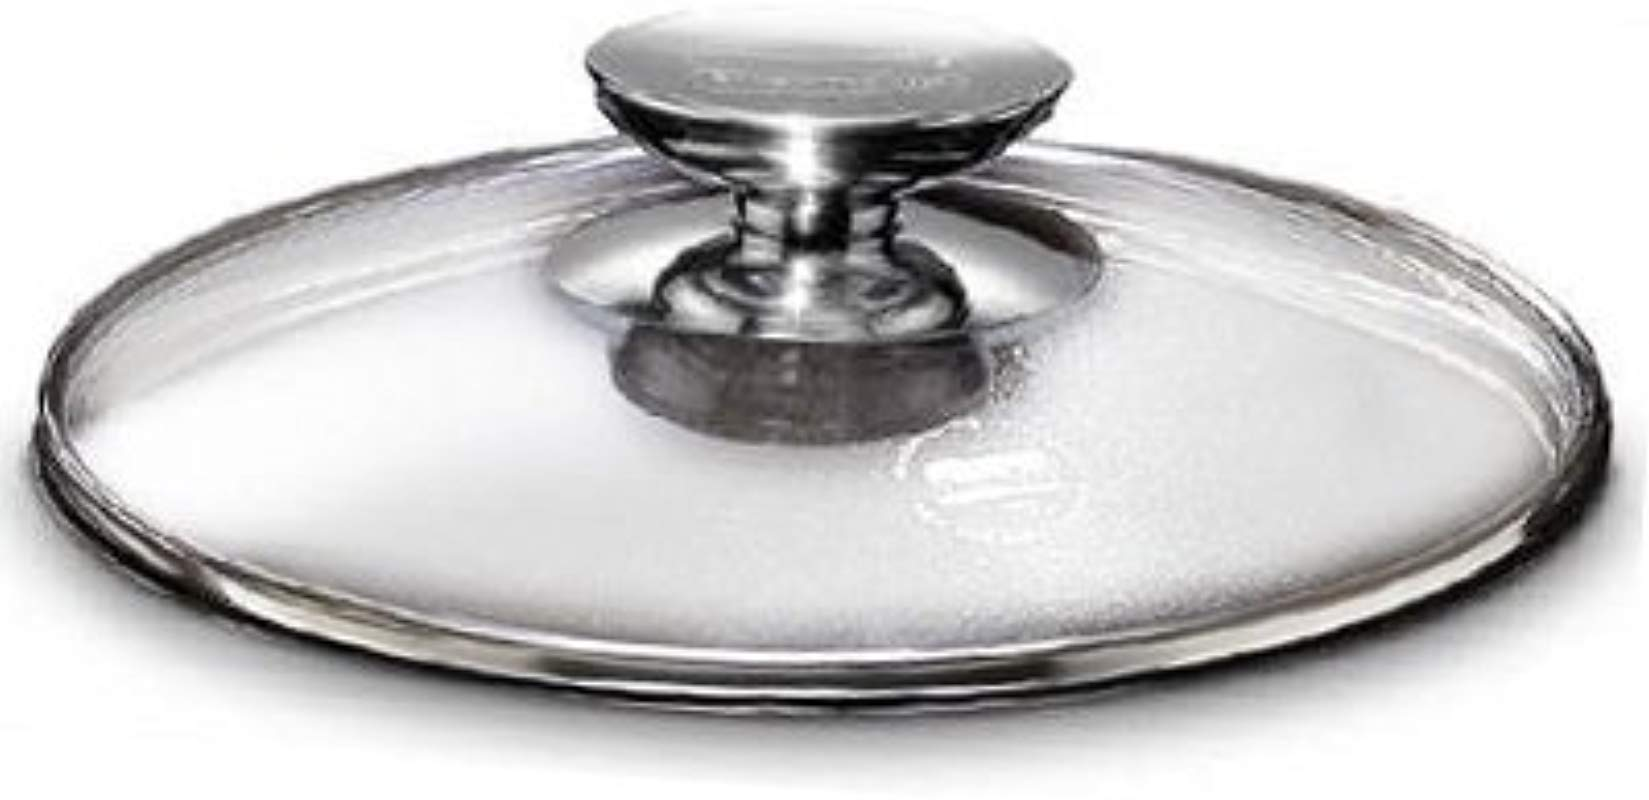 Berndes 007028 SignoCast Universal Glass Lid With Stainless Steel Rim And Knob 11 5 Inches